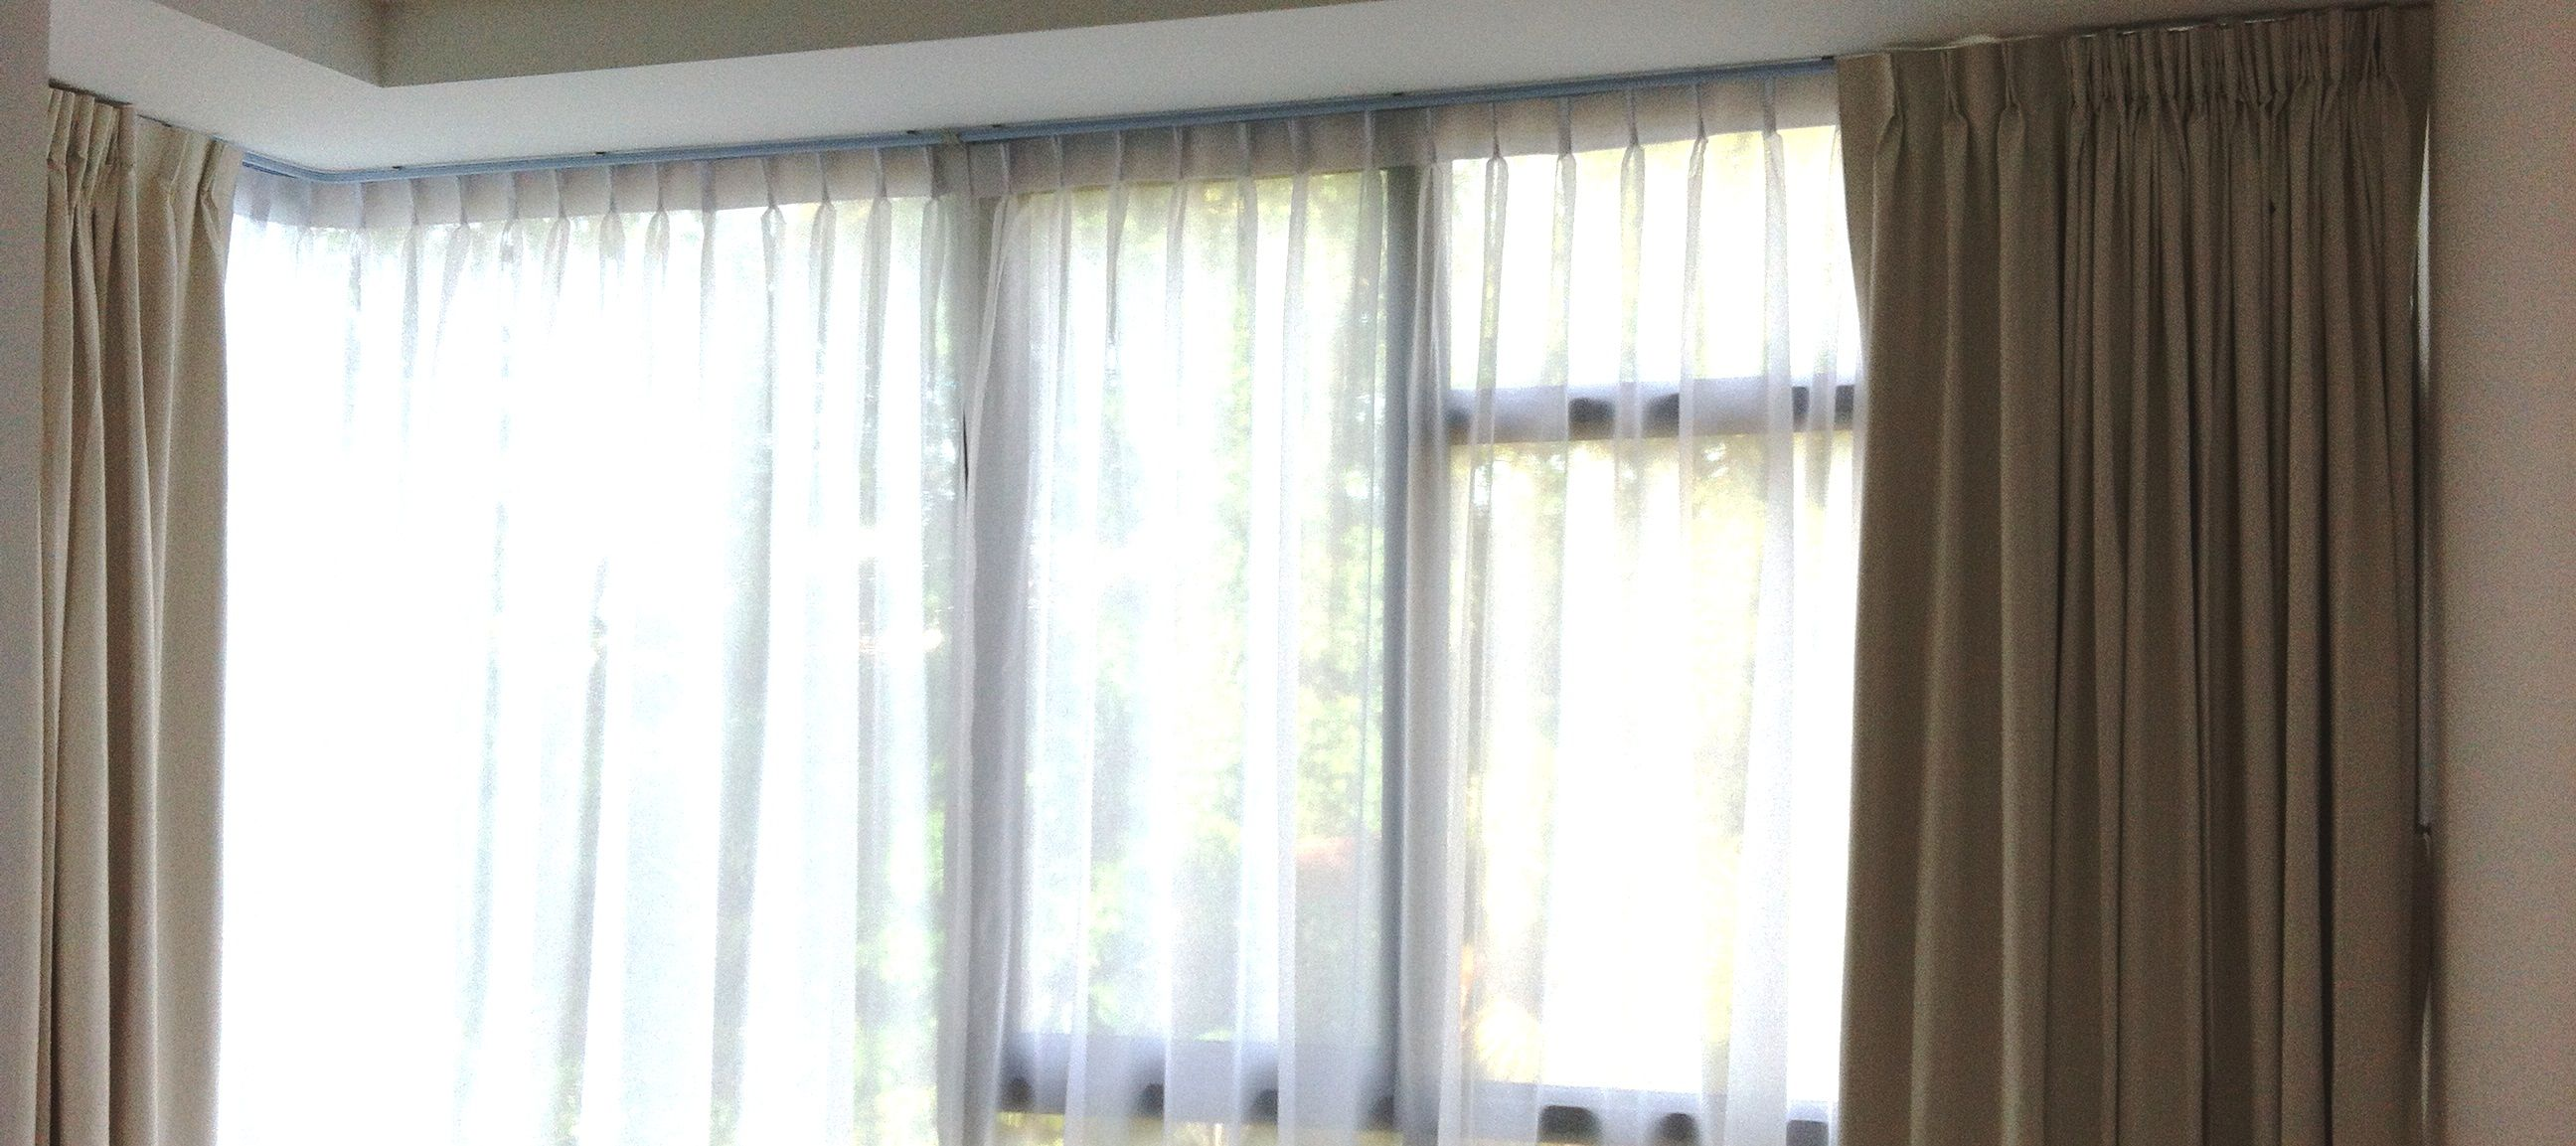 Roller Blinds Curtains Outdoor Blinds